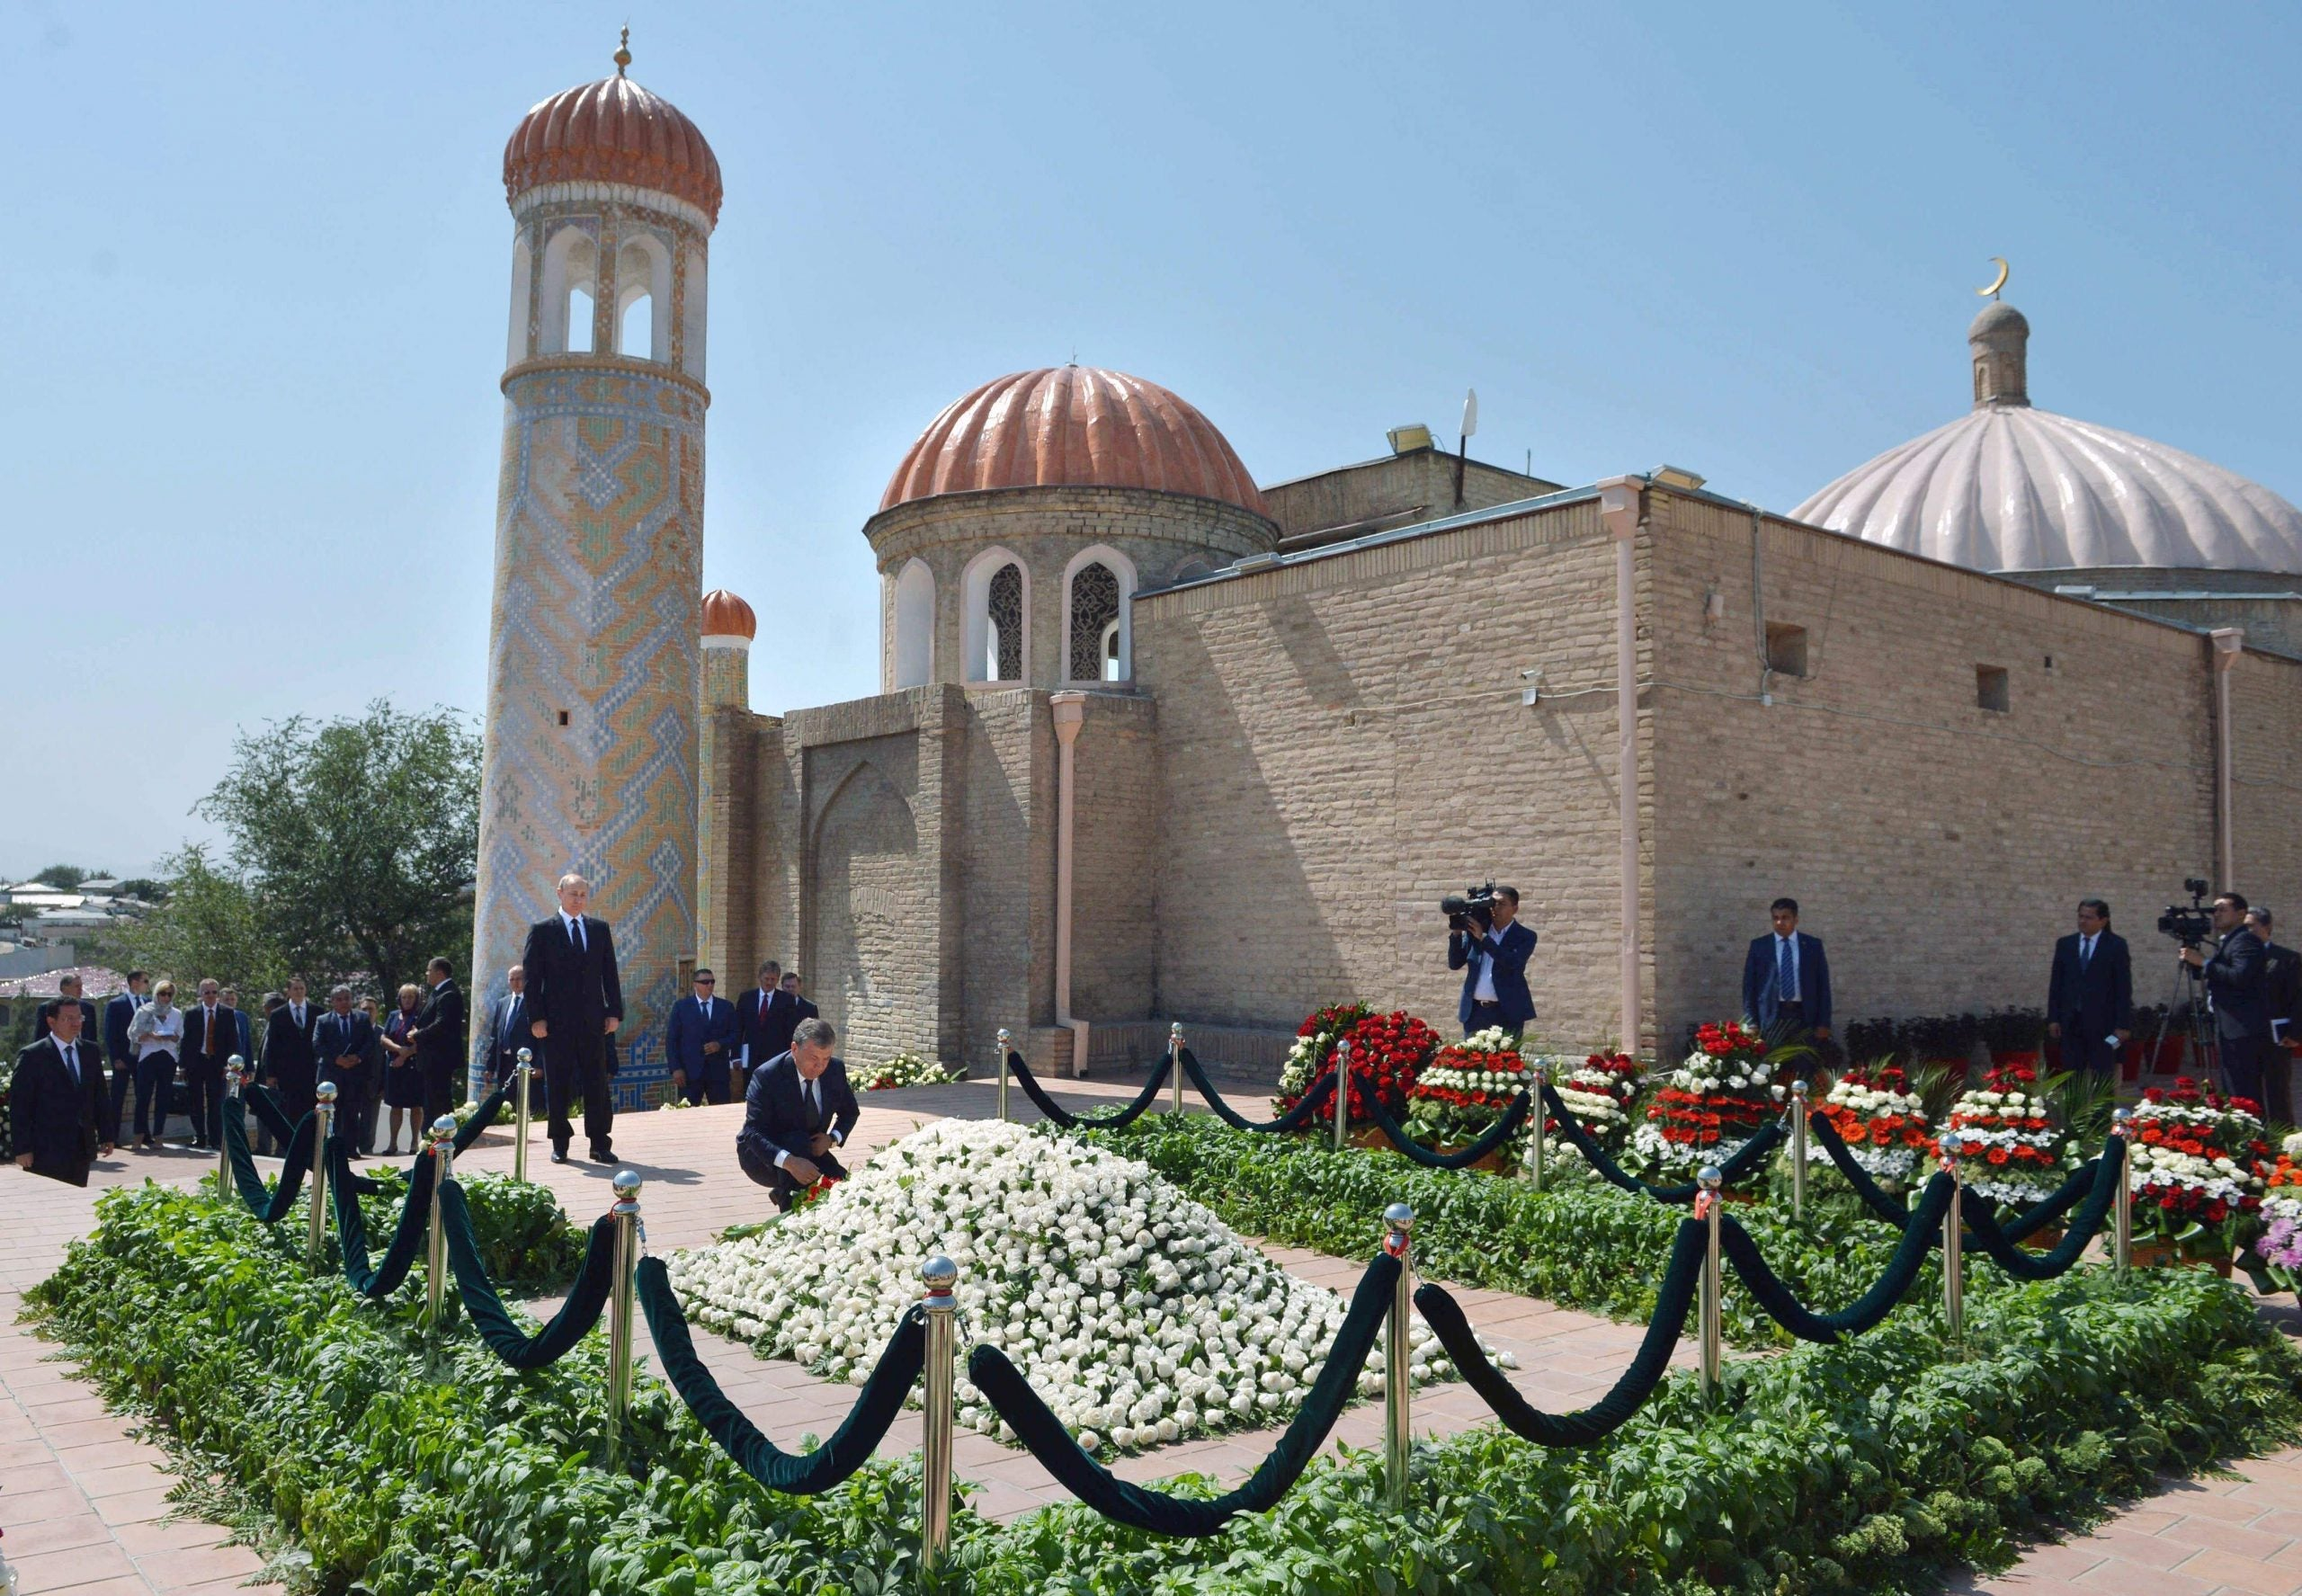 How will central Asia cope with the passing of its independence generation?